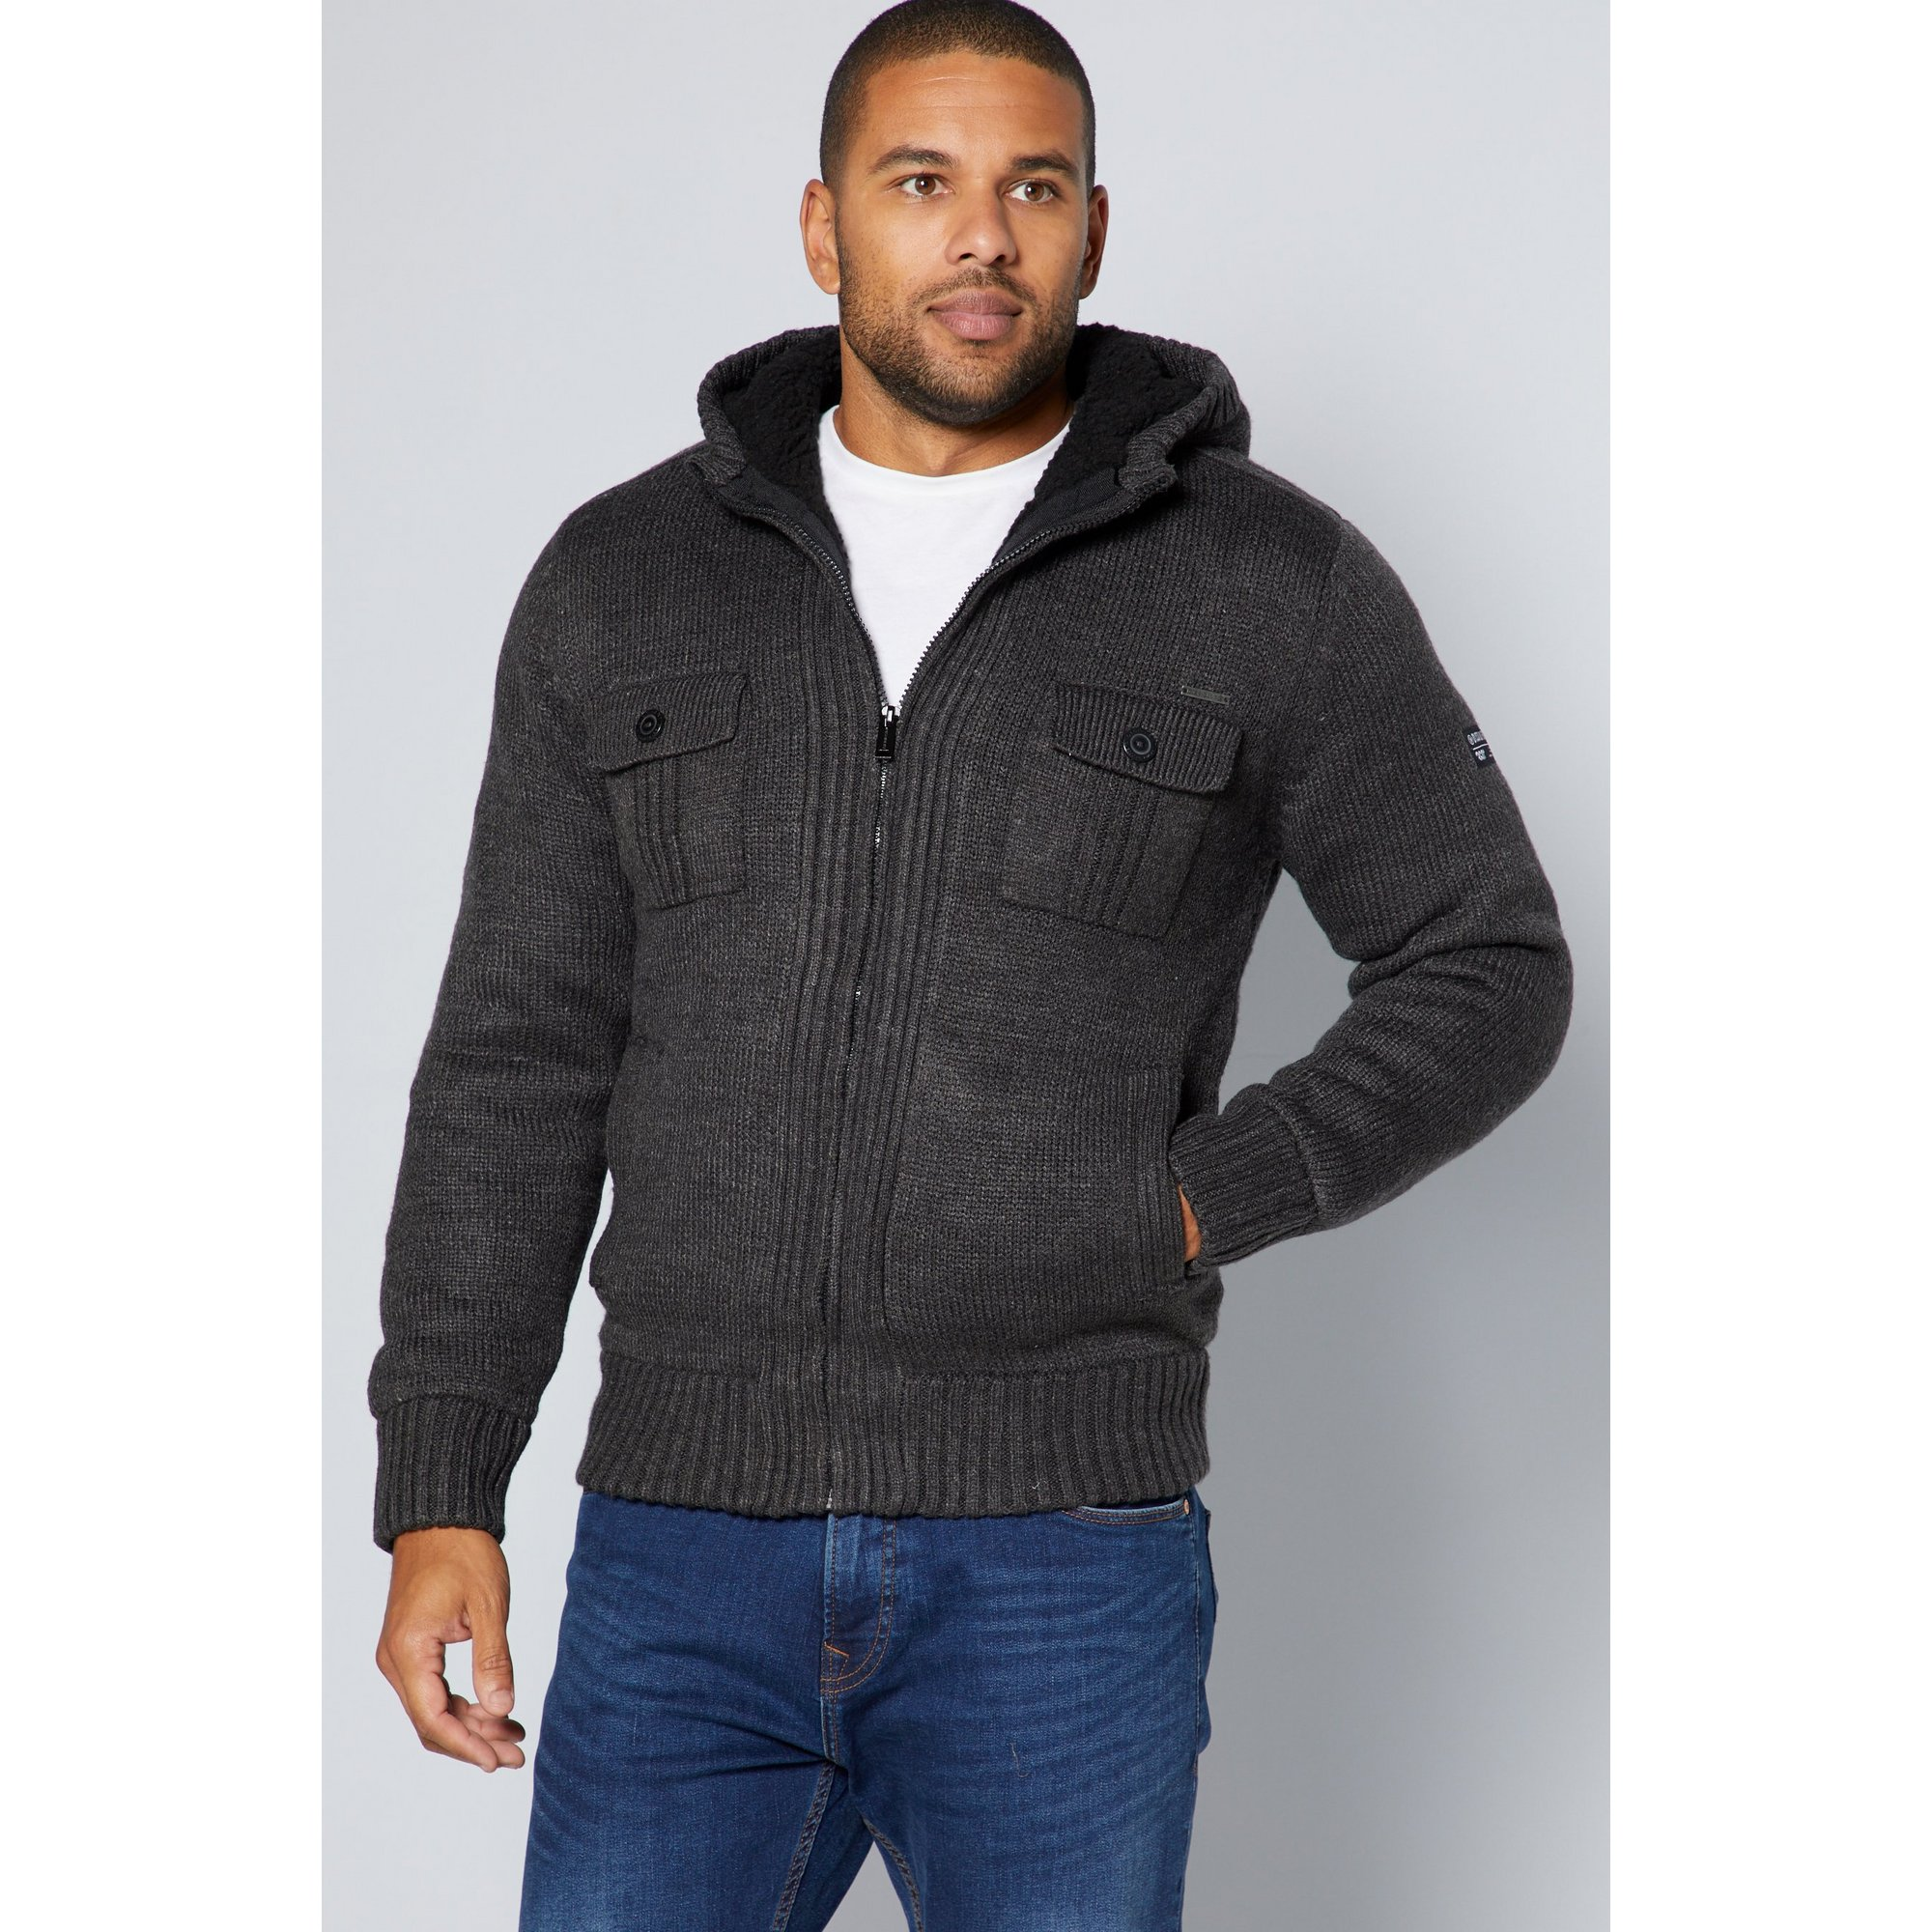 Image of Dissident Lined Knit Sherpa Jacket